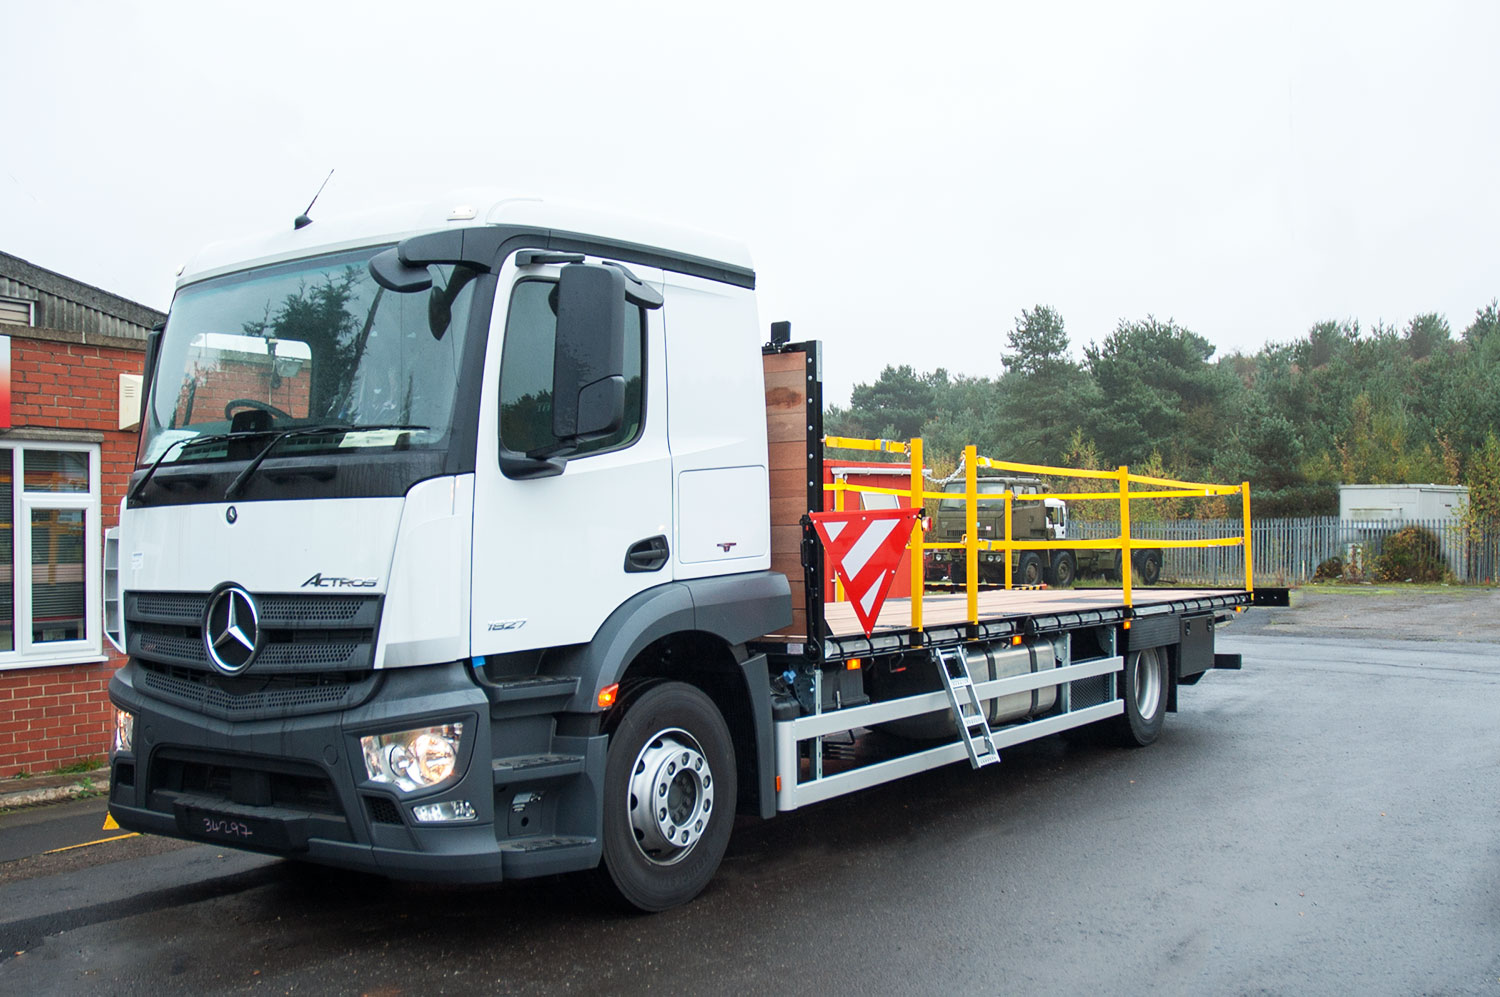 18 tonne extending beavertail with twin strap edge protection system